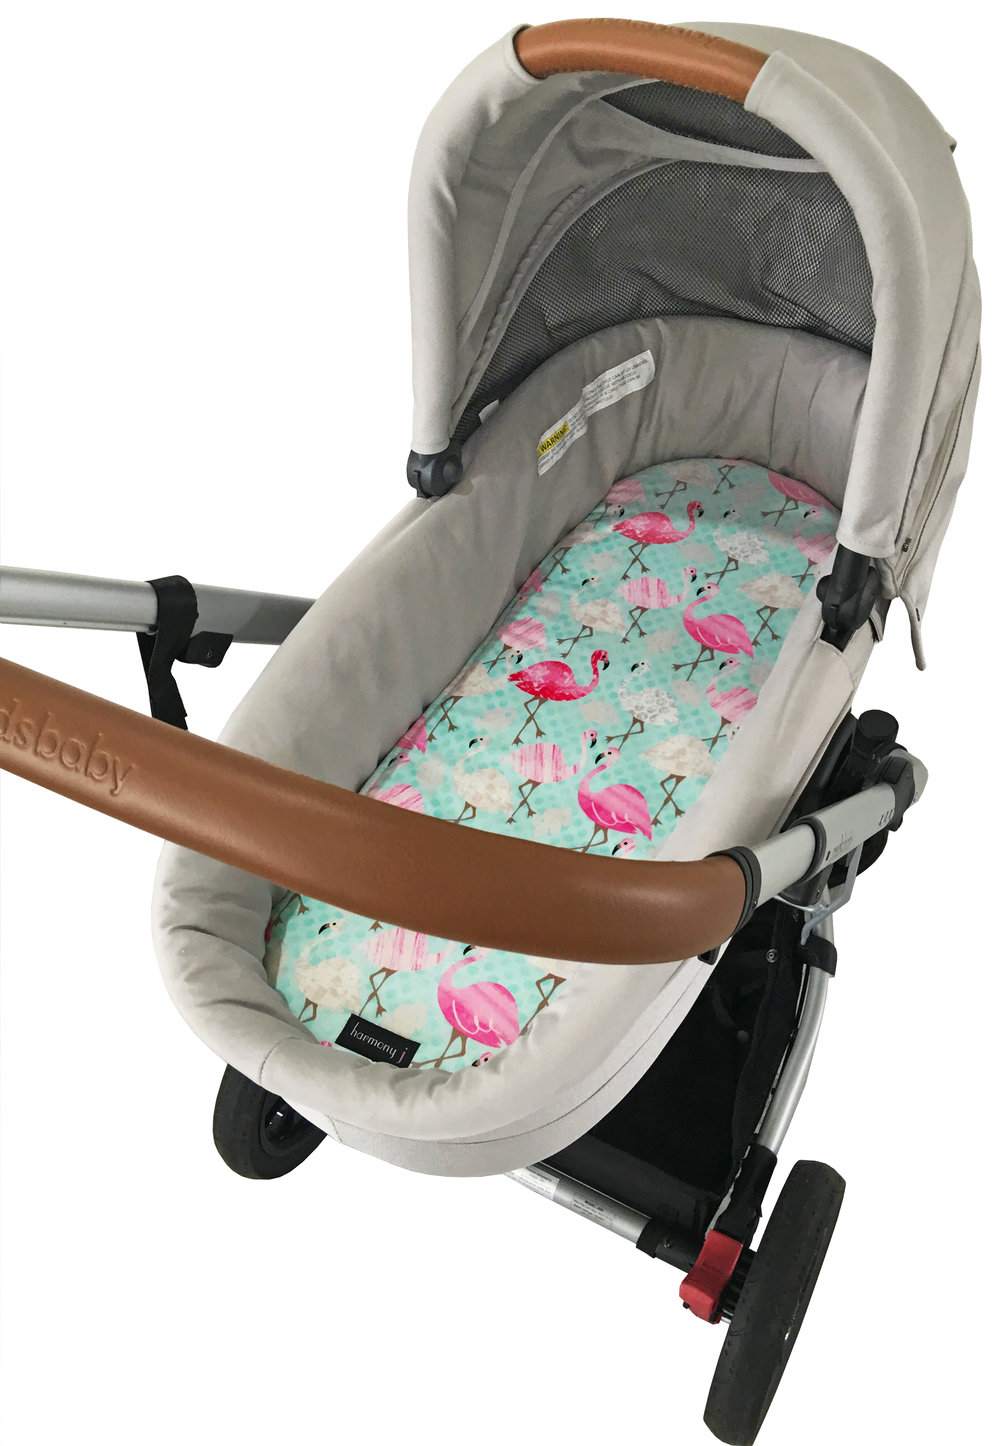 Redsbaby-Bassinet-Flamingos.jpg